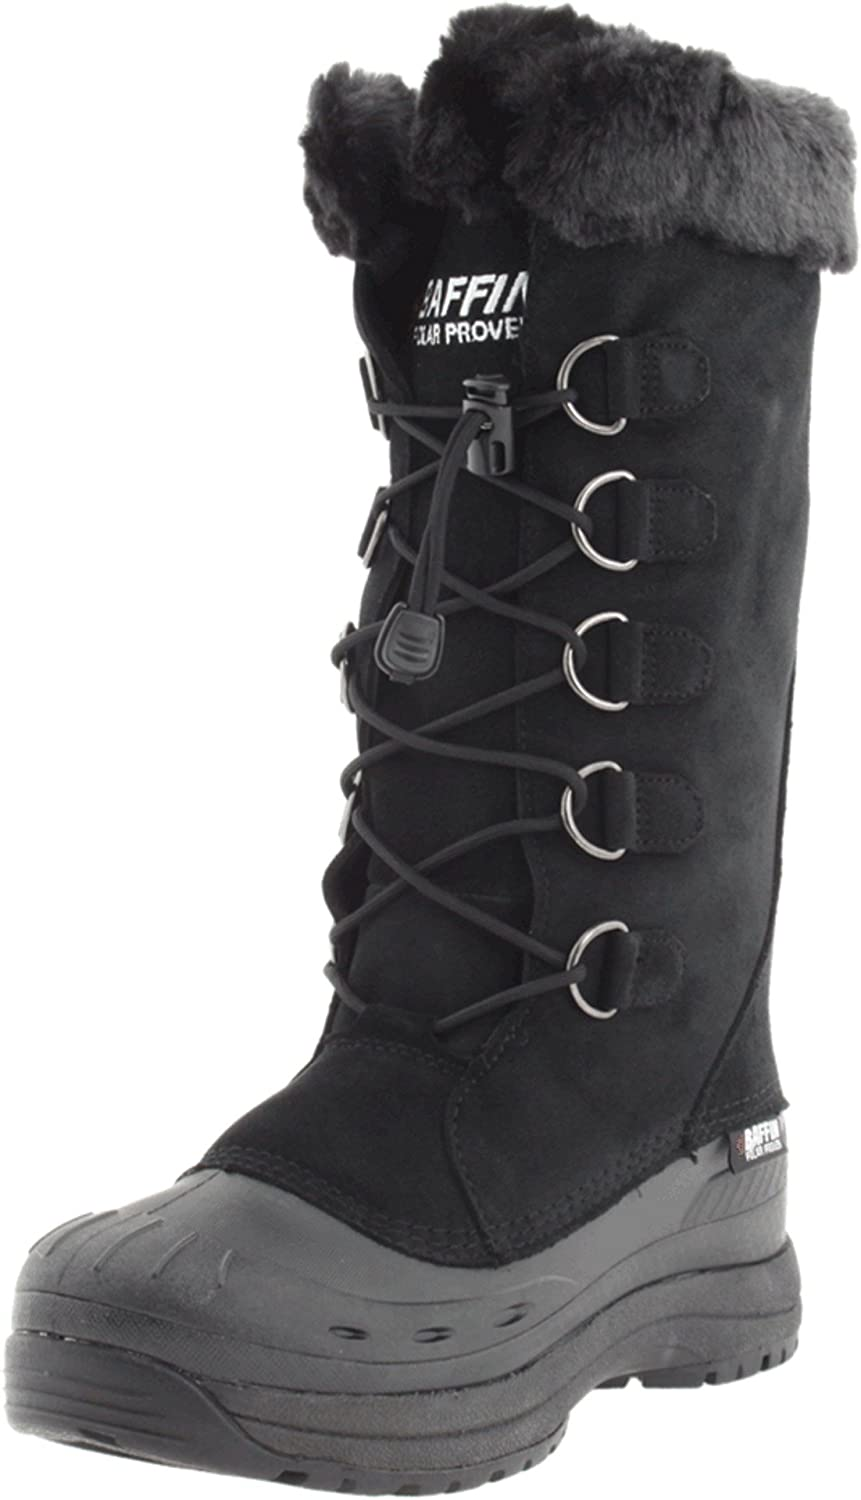 Baffin Women's Judy Snow US|Black Boot B004W5RQGU 10 B(M) US|Black Snow 0e258c